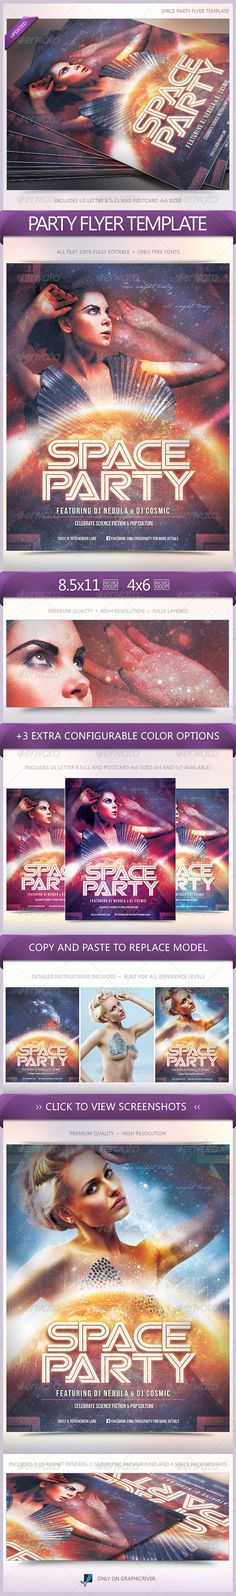 Space Party Flyer  #GraphicRiver        Space Party Flyer Flyer for pop culture/science fiction party or event. Perfectly setup for print. CMYK, 300dpi, full bleeds. Model not included. The model is for preview purposes only.  Includes   8.5×11 US Letter Version  4×6 Postcard Version  1 Space Background  1 Geometric Background  2 3D Planet Renders  Detailed Instructions  Assets:  Bebas Neue  Viper Squadron  Beauty Alien Woman in Futuristic Dress Photo  	…